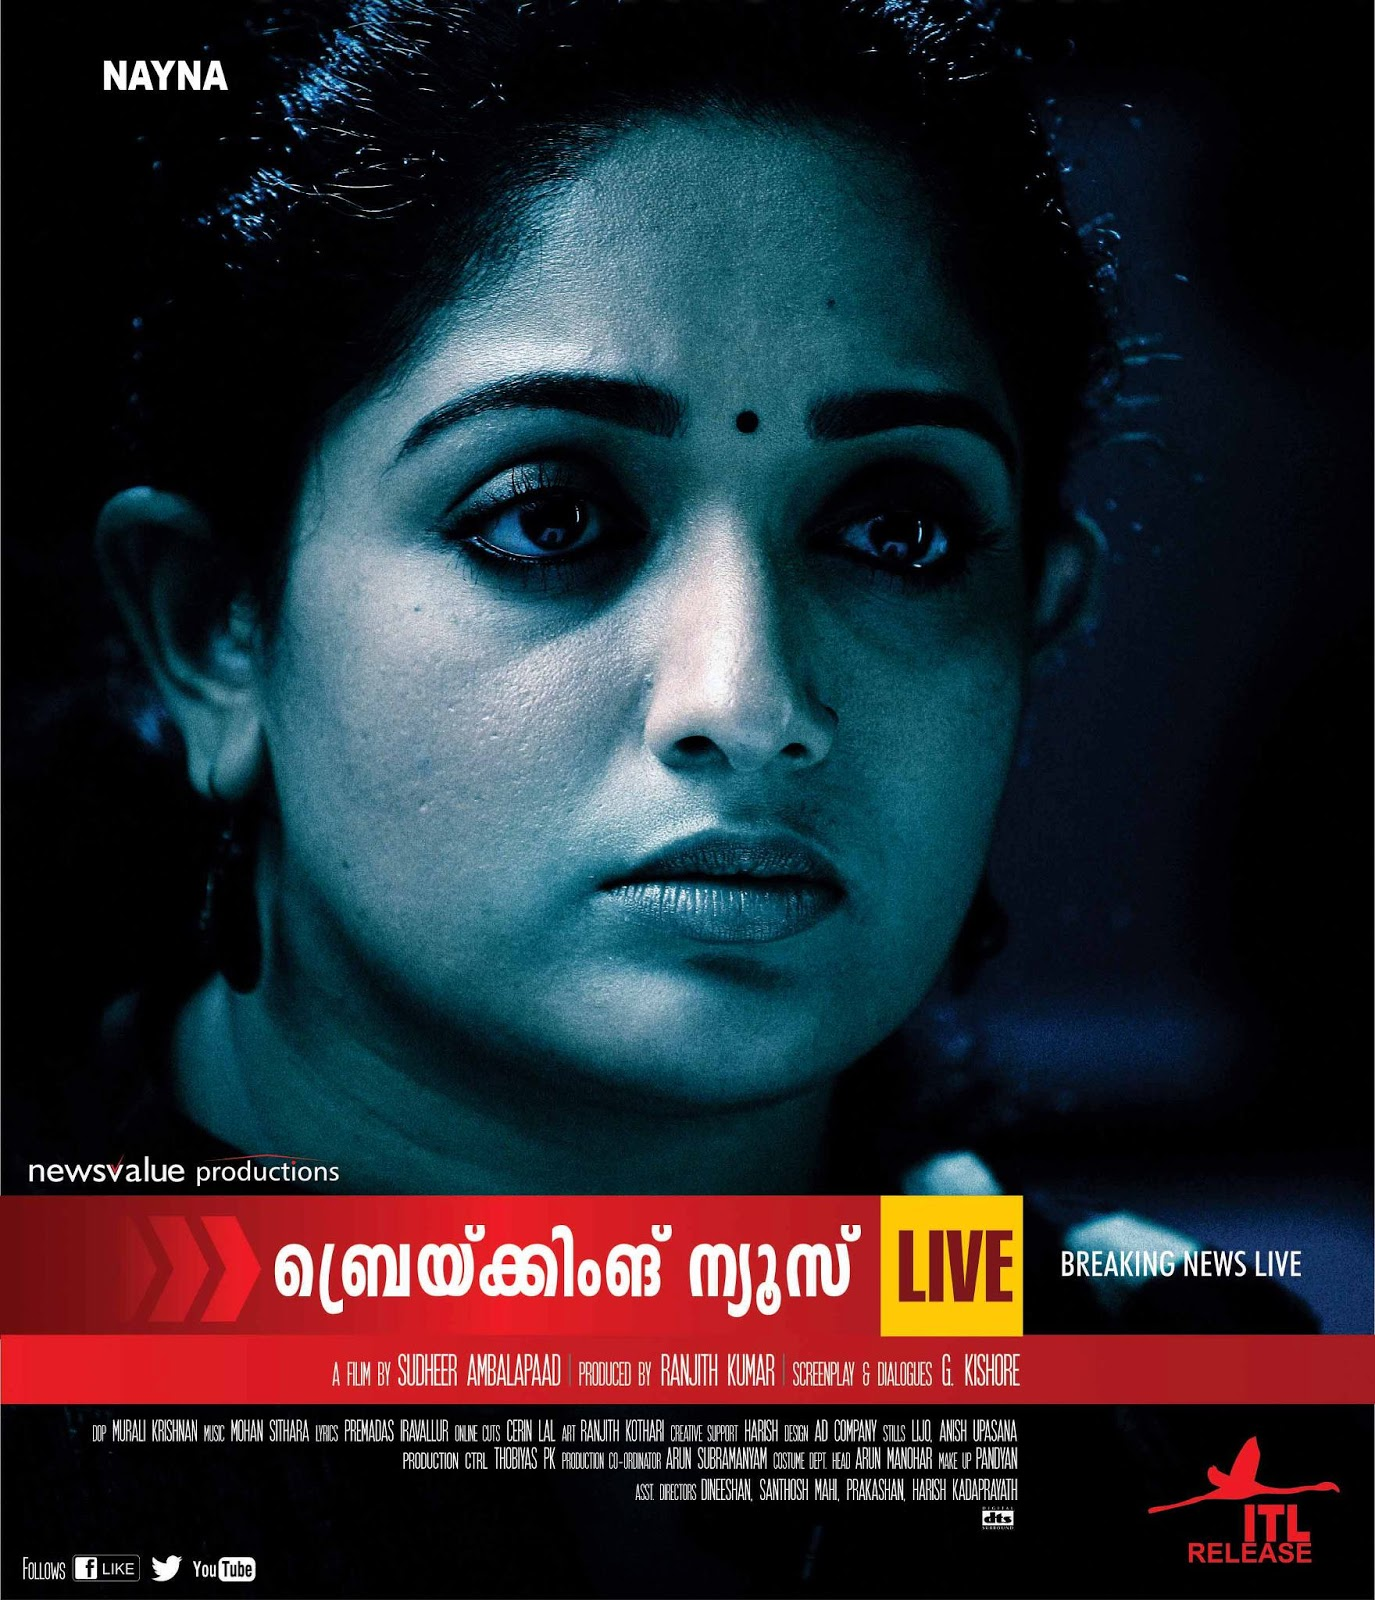 Breaking News LiveMalayalam movie song download  gaanakeralam